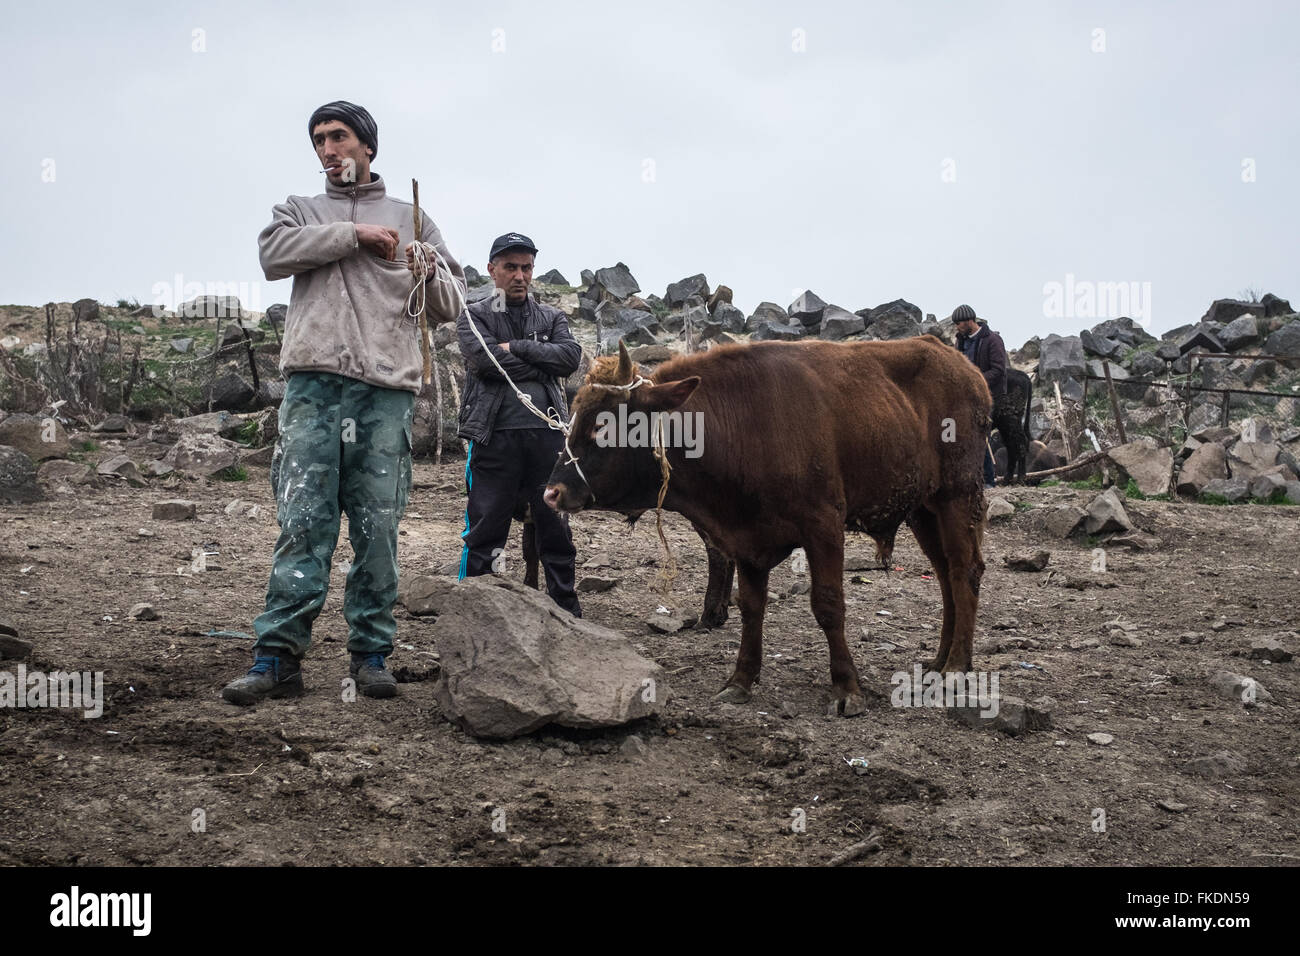 Scene from an open air animal market in Georgia close to the Azerbaijan border. A ma smokes while he holds a tethered - Stock Image